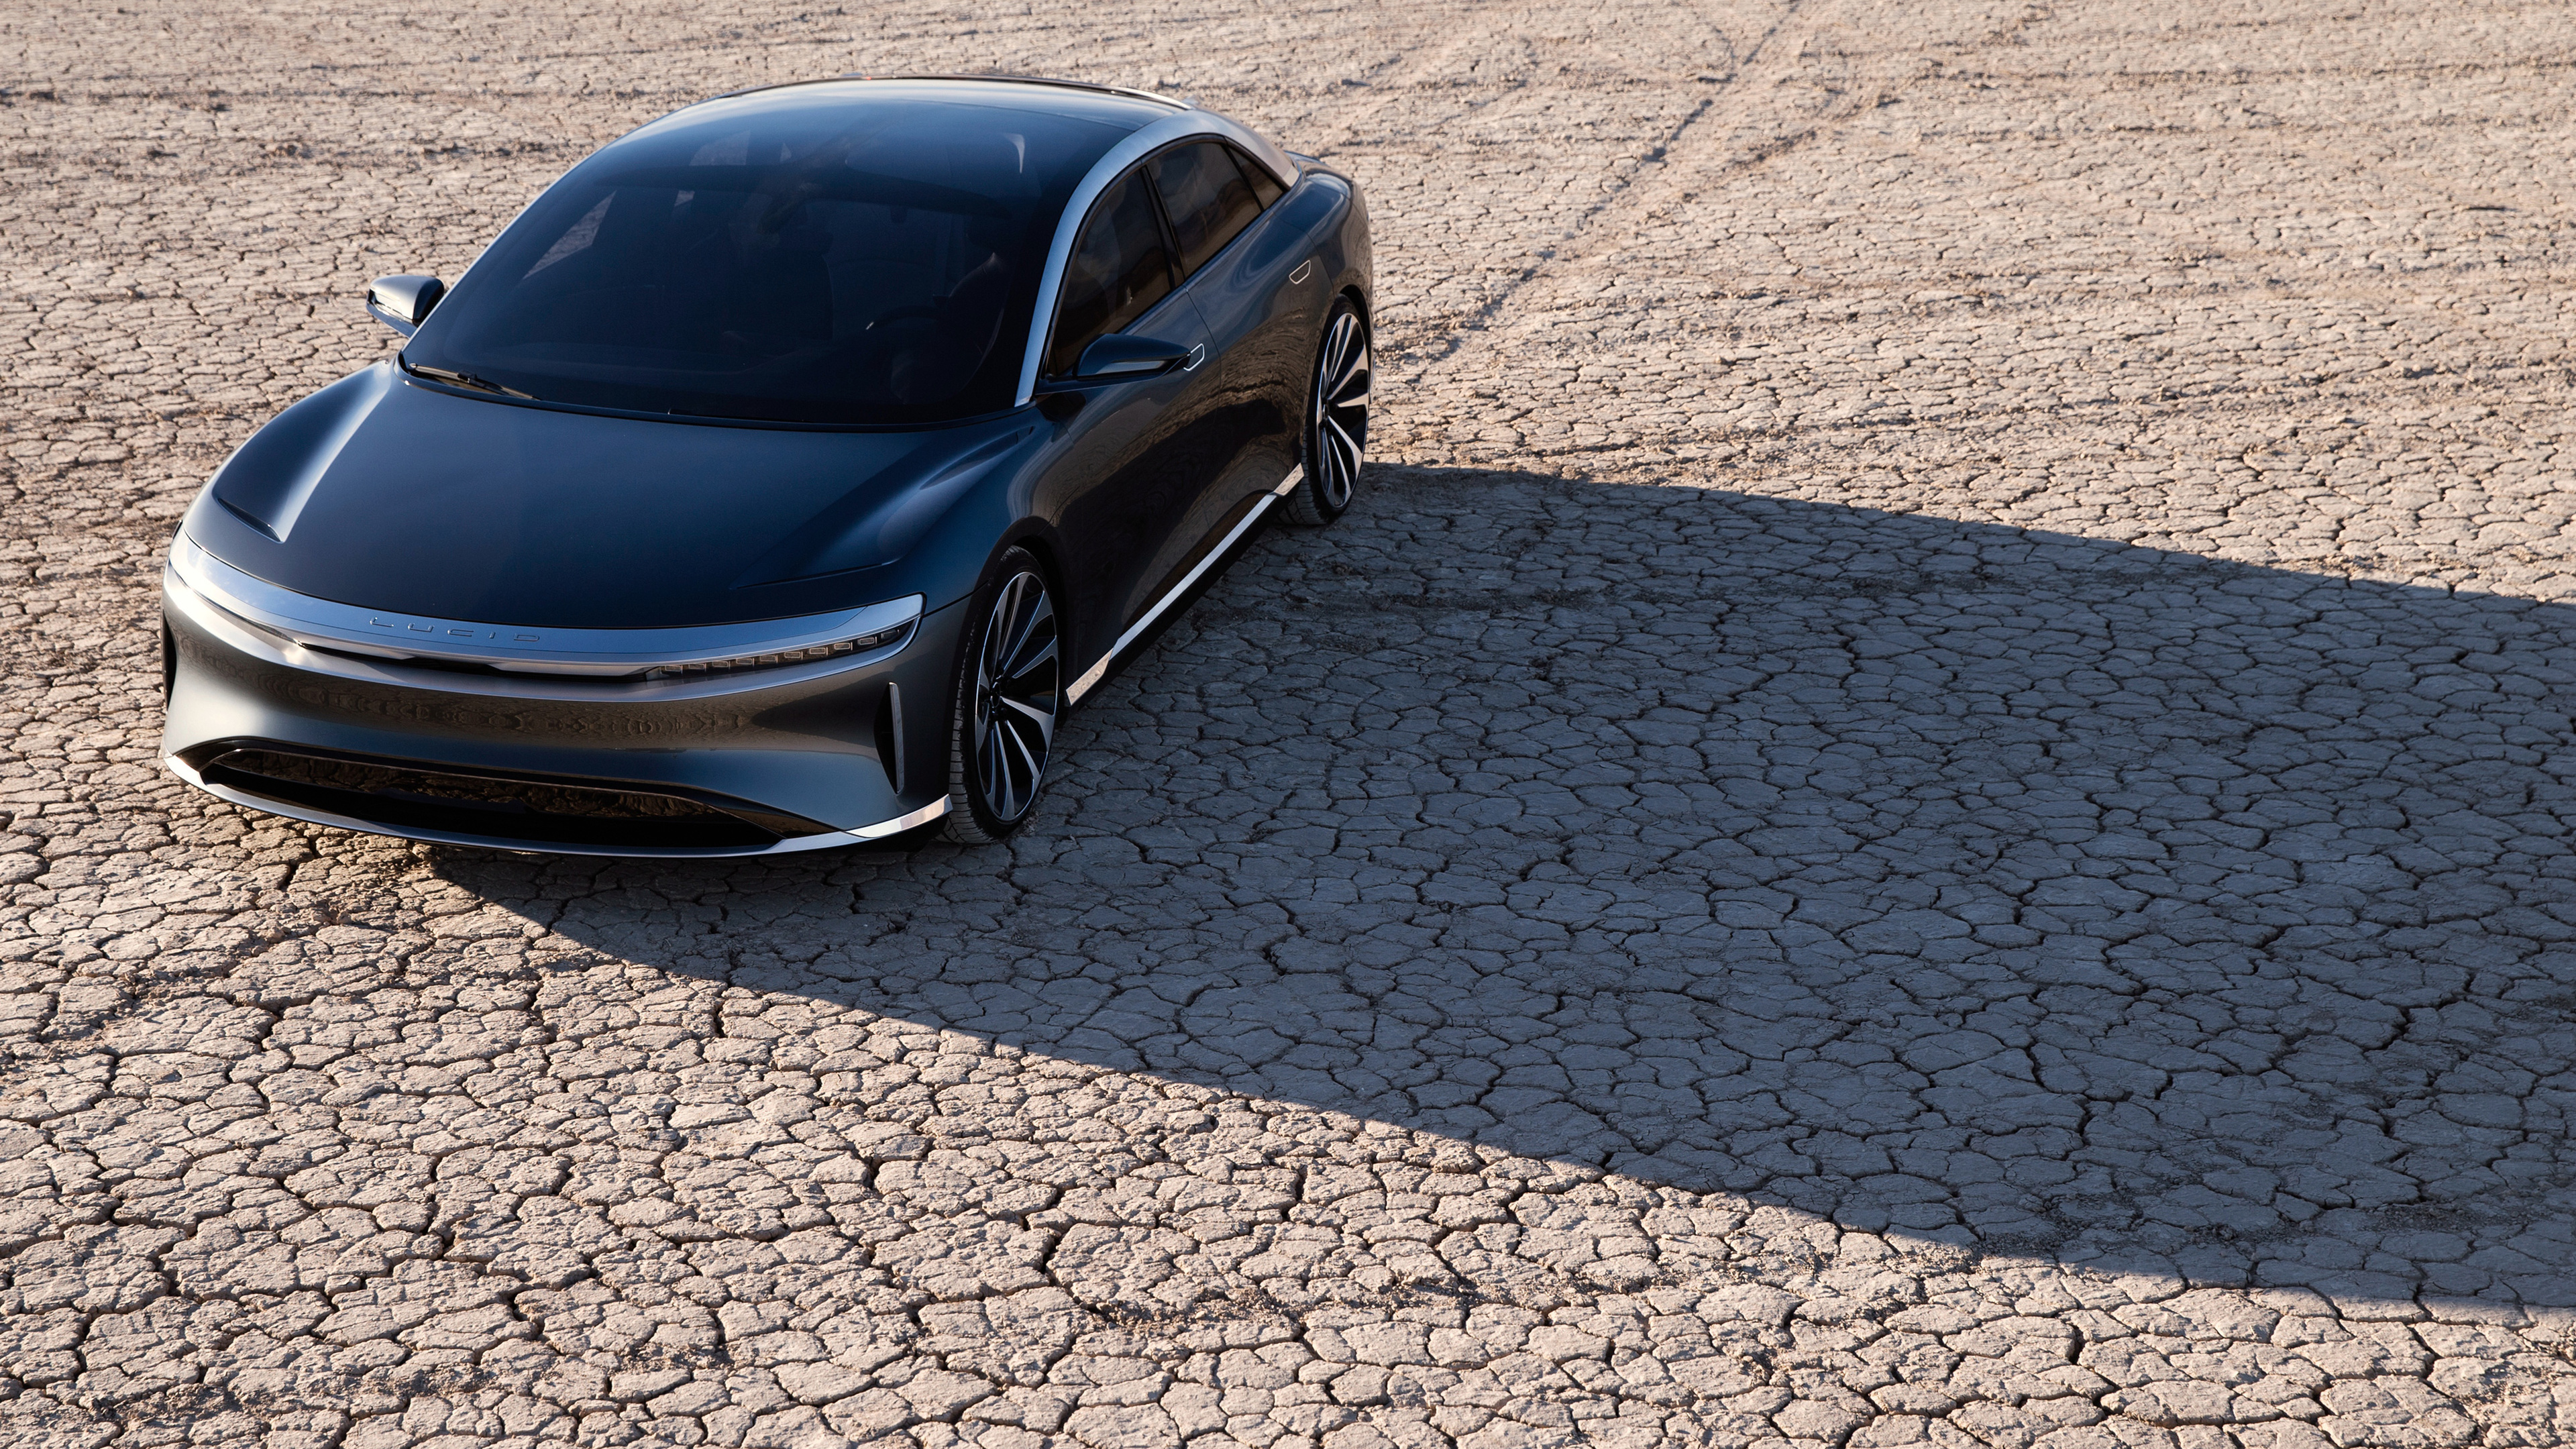 lucid air launch edition prototype 2018 4k 1539792723 - Lucid Air Launch Edition Prototype 2018 4k - lucid air wallpapers, hd-wallpapers, concept cars wallpapers, cars wallpapers, 4k-wallpapers